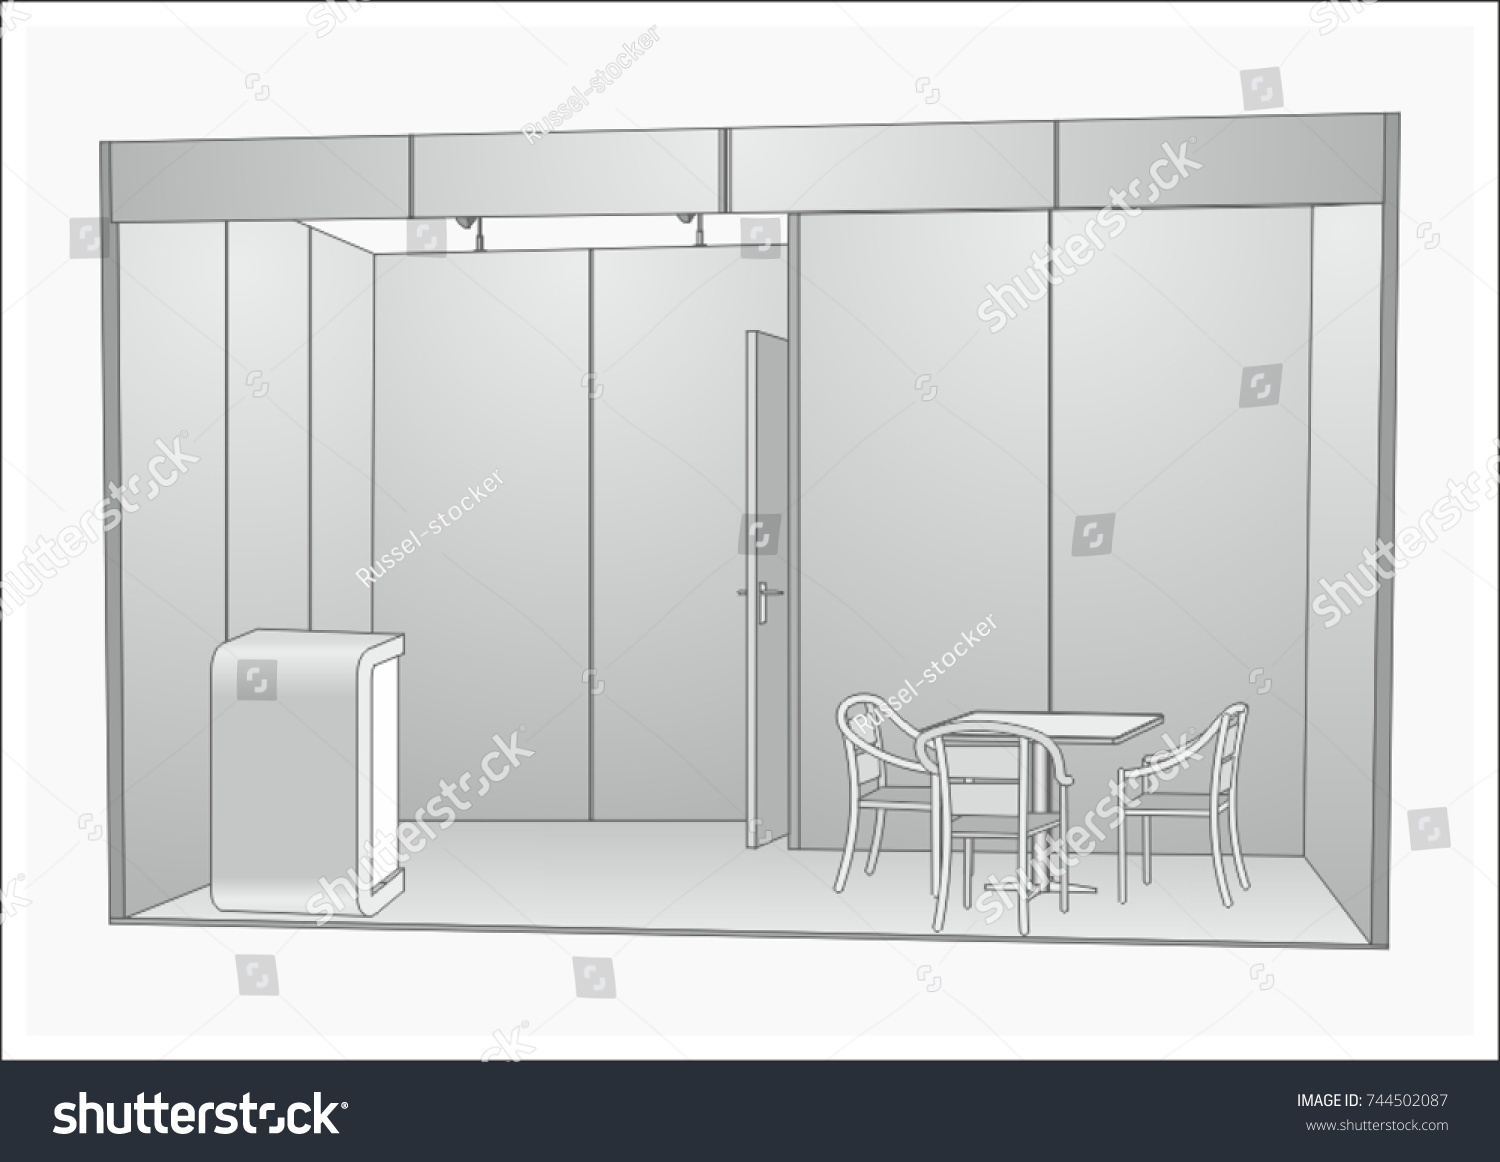 Exhibition Stand Design Drawings : Vector exhibition stand design concept blank stock vector royalty